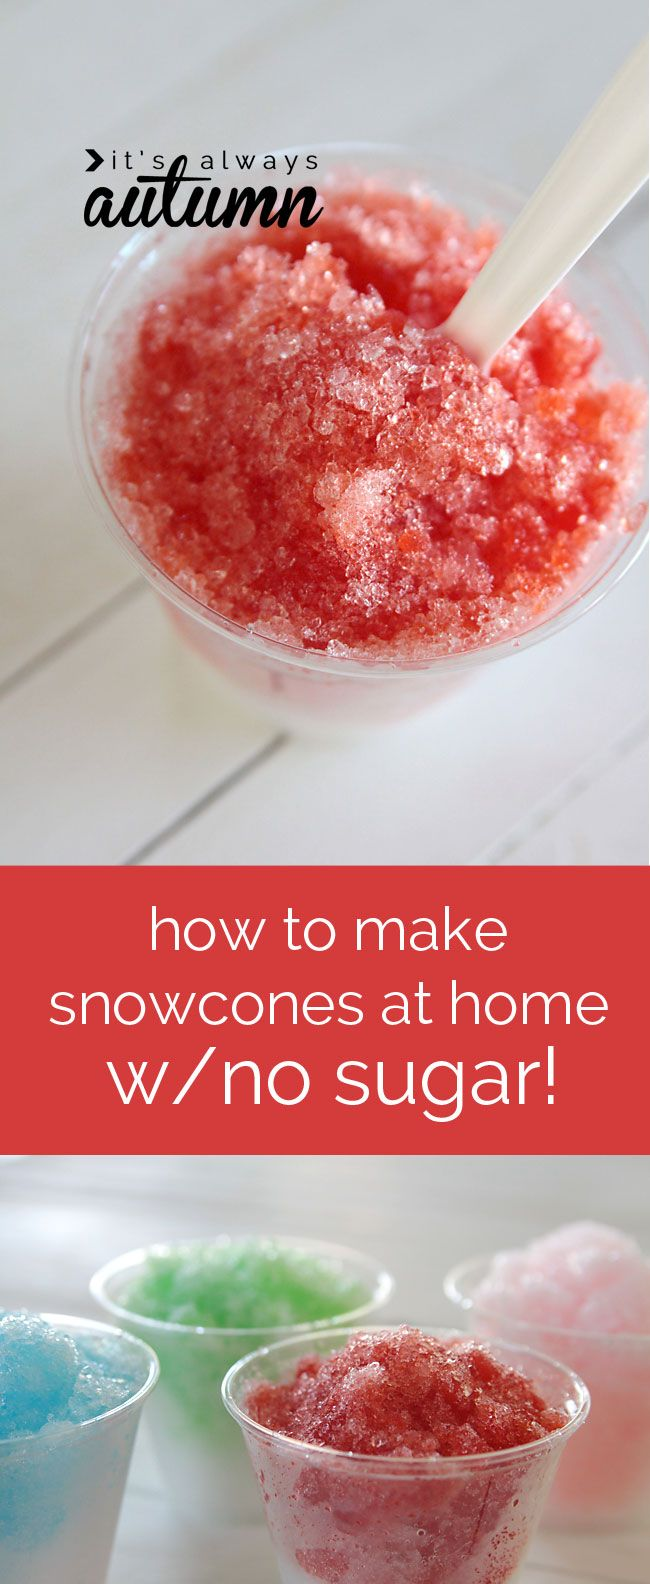 so cool - you can make sugar free snow cones at home!: Free Snowcon, Snow Cones, Homemade Snow, Crystals Lights, Syrup Recipes, Free Syrup, Cones Ideas, Cones Amp, Sugar Free